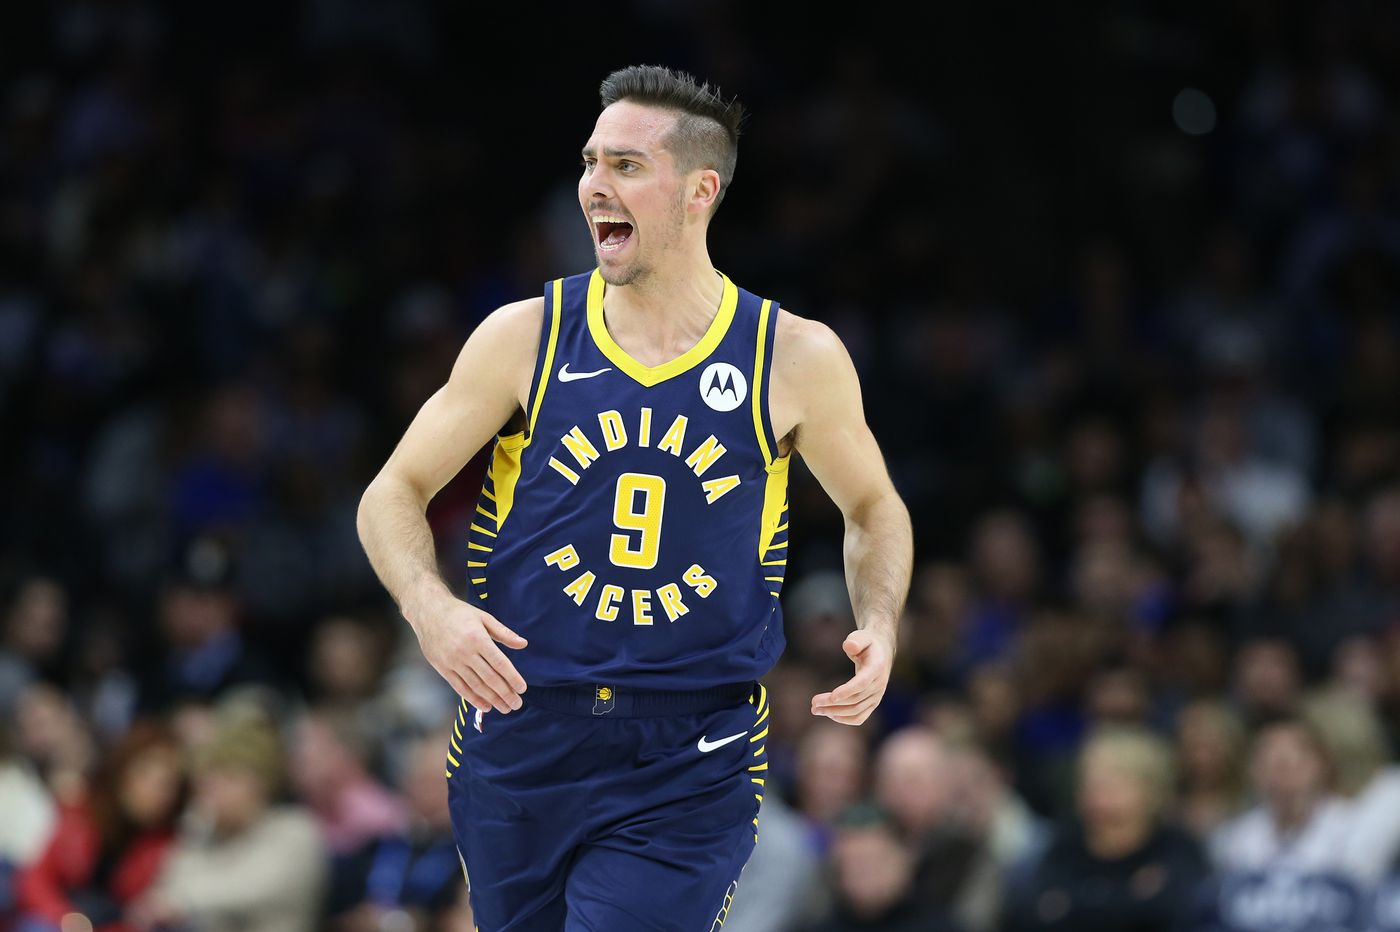 Pacers guard T.J. McConnell said he misses Sixers